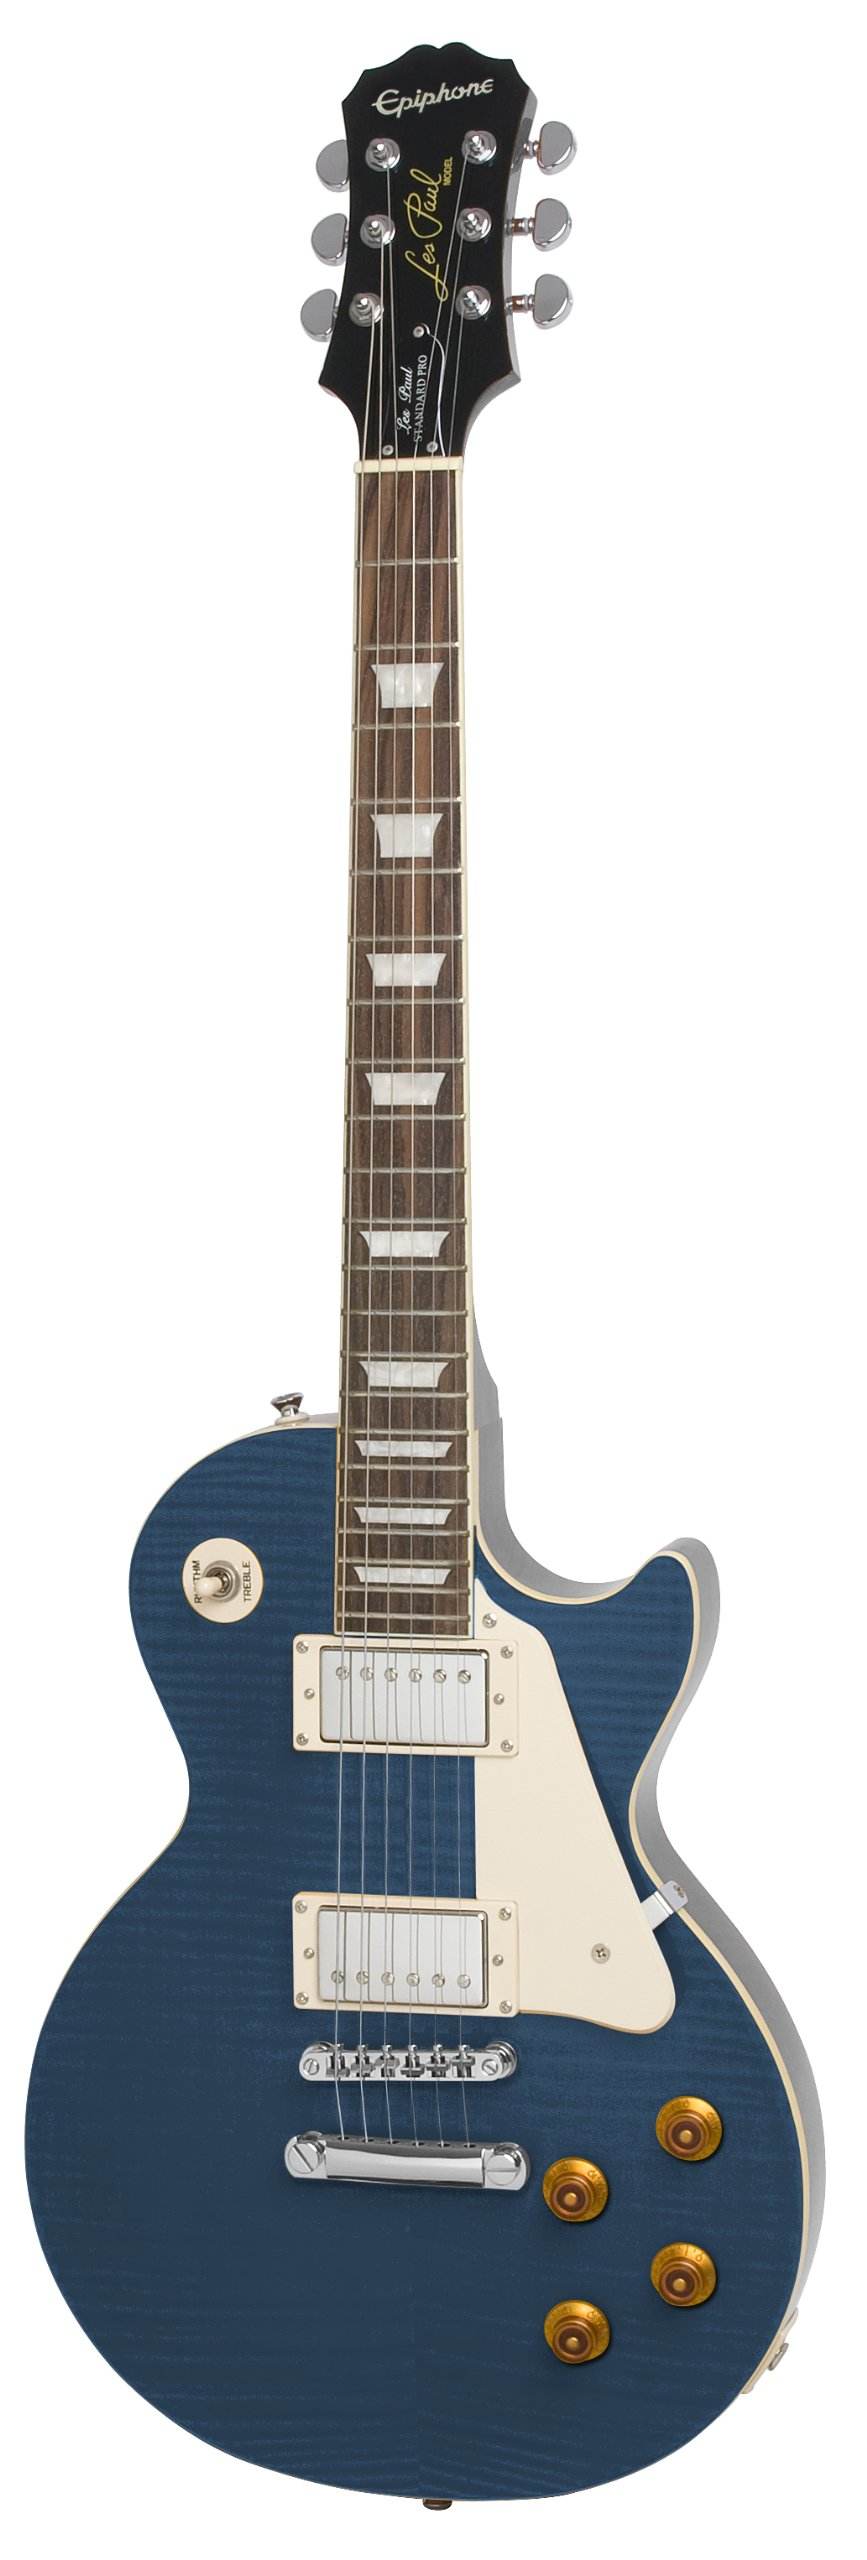 Epiphone Les Paul STANDARD PLUS-TOP PRO Electric Guitar with Coil-Tapping, Translucent Blue